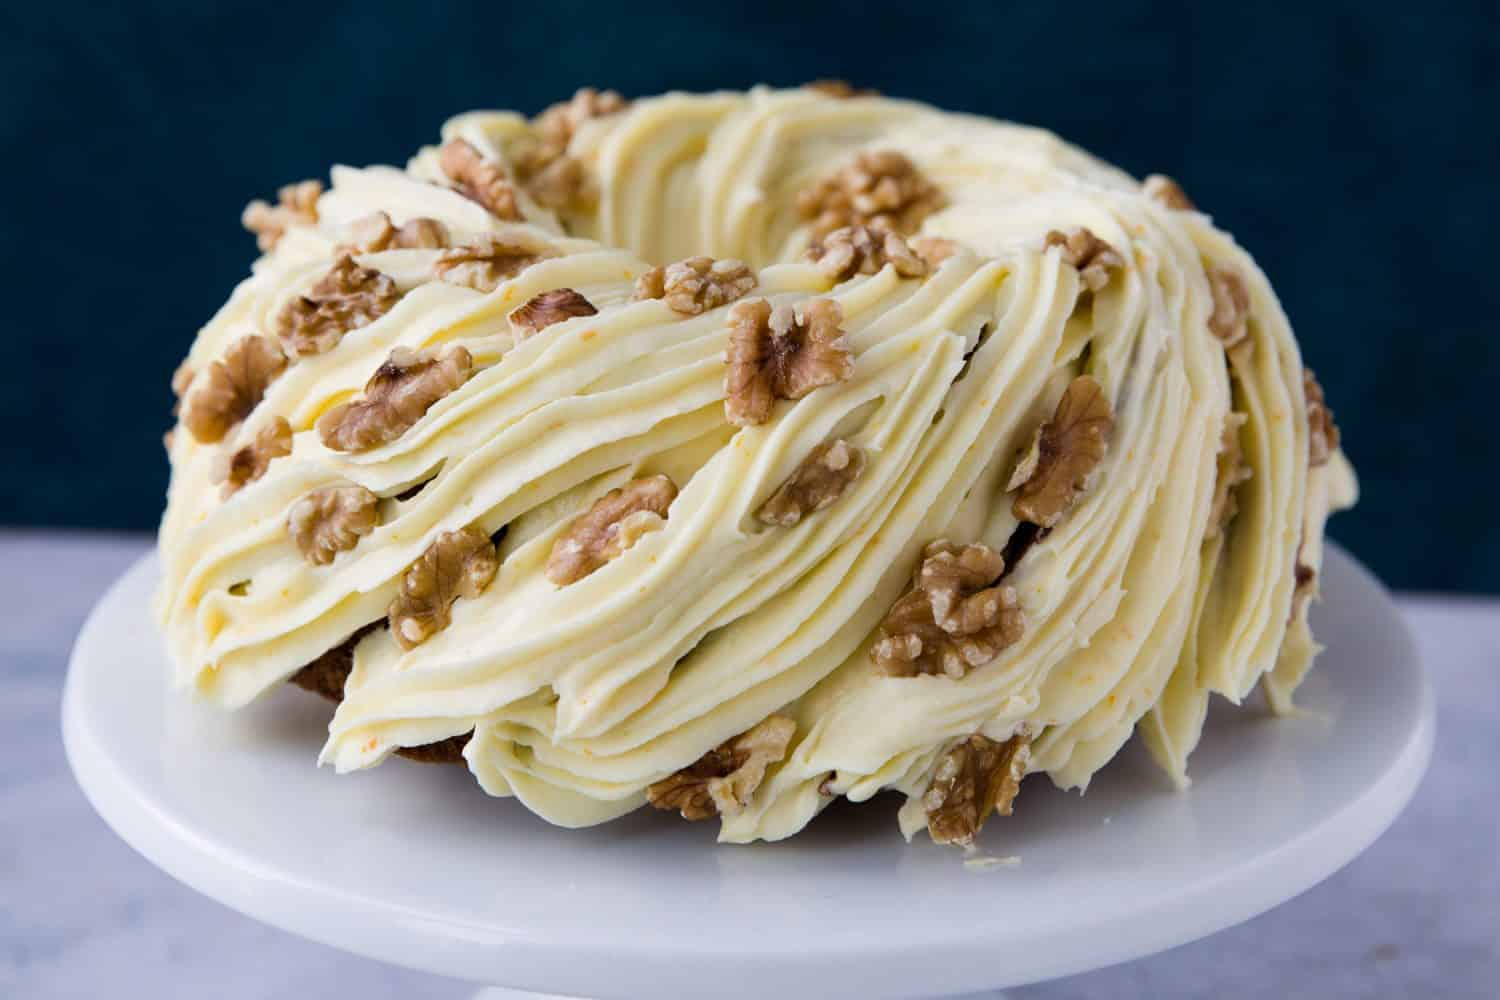 A carrot cake bundt on a white cake stand. There is frosting all over the cake and whole walnuts have been added for decoration.